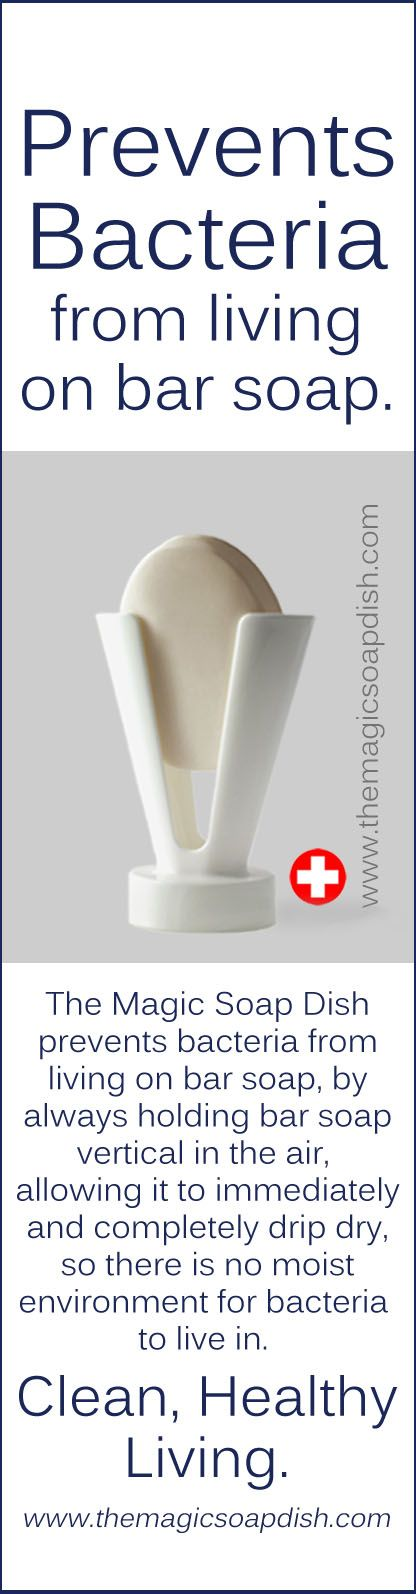 The Magic Soap Dish prevents bacteria from living on bar soap, by always holding bar soap vertical in the air, allowing it to immediately and completely drip dry, so there is no moist environment for bacteria to live in. #magic #bar #soap #dish